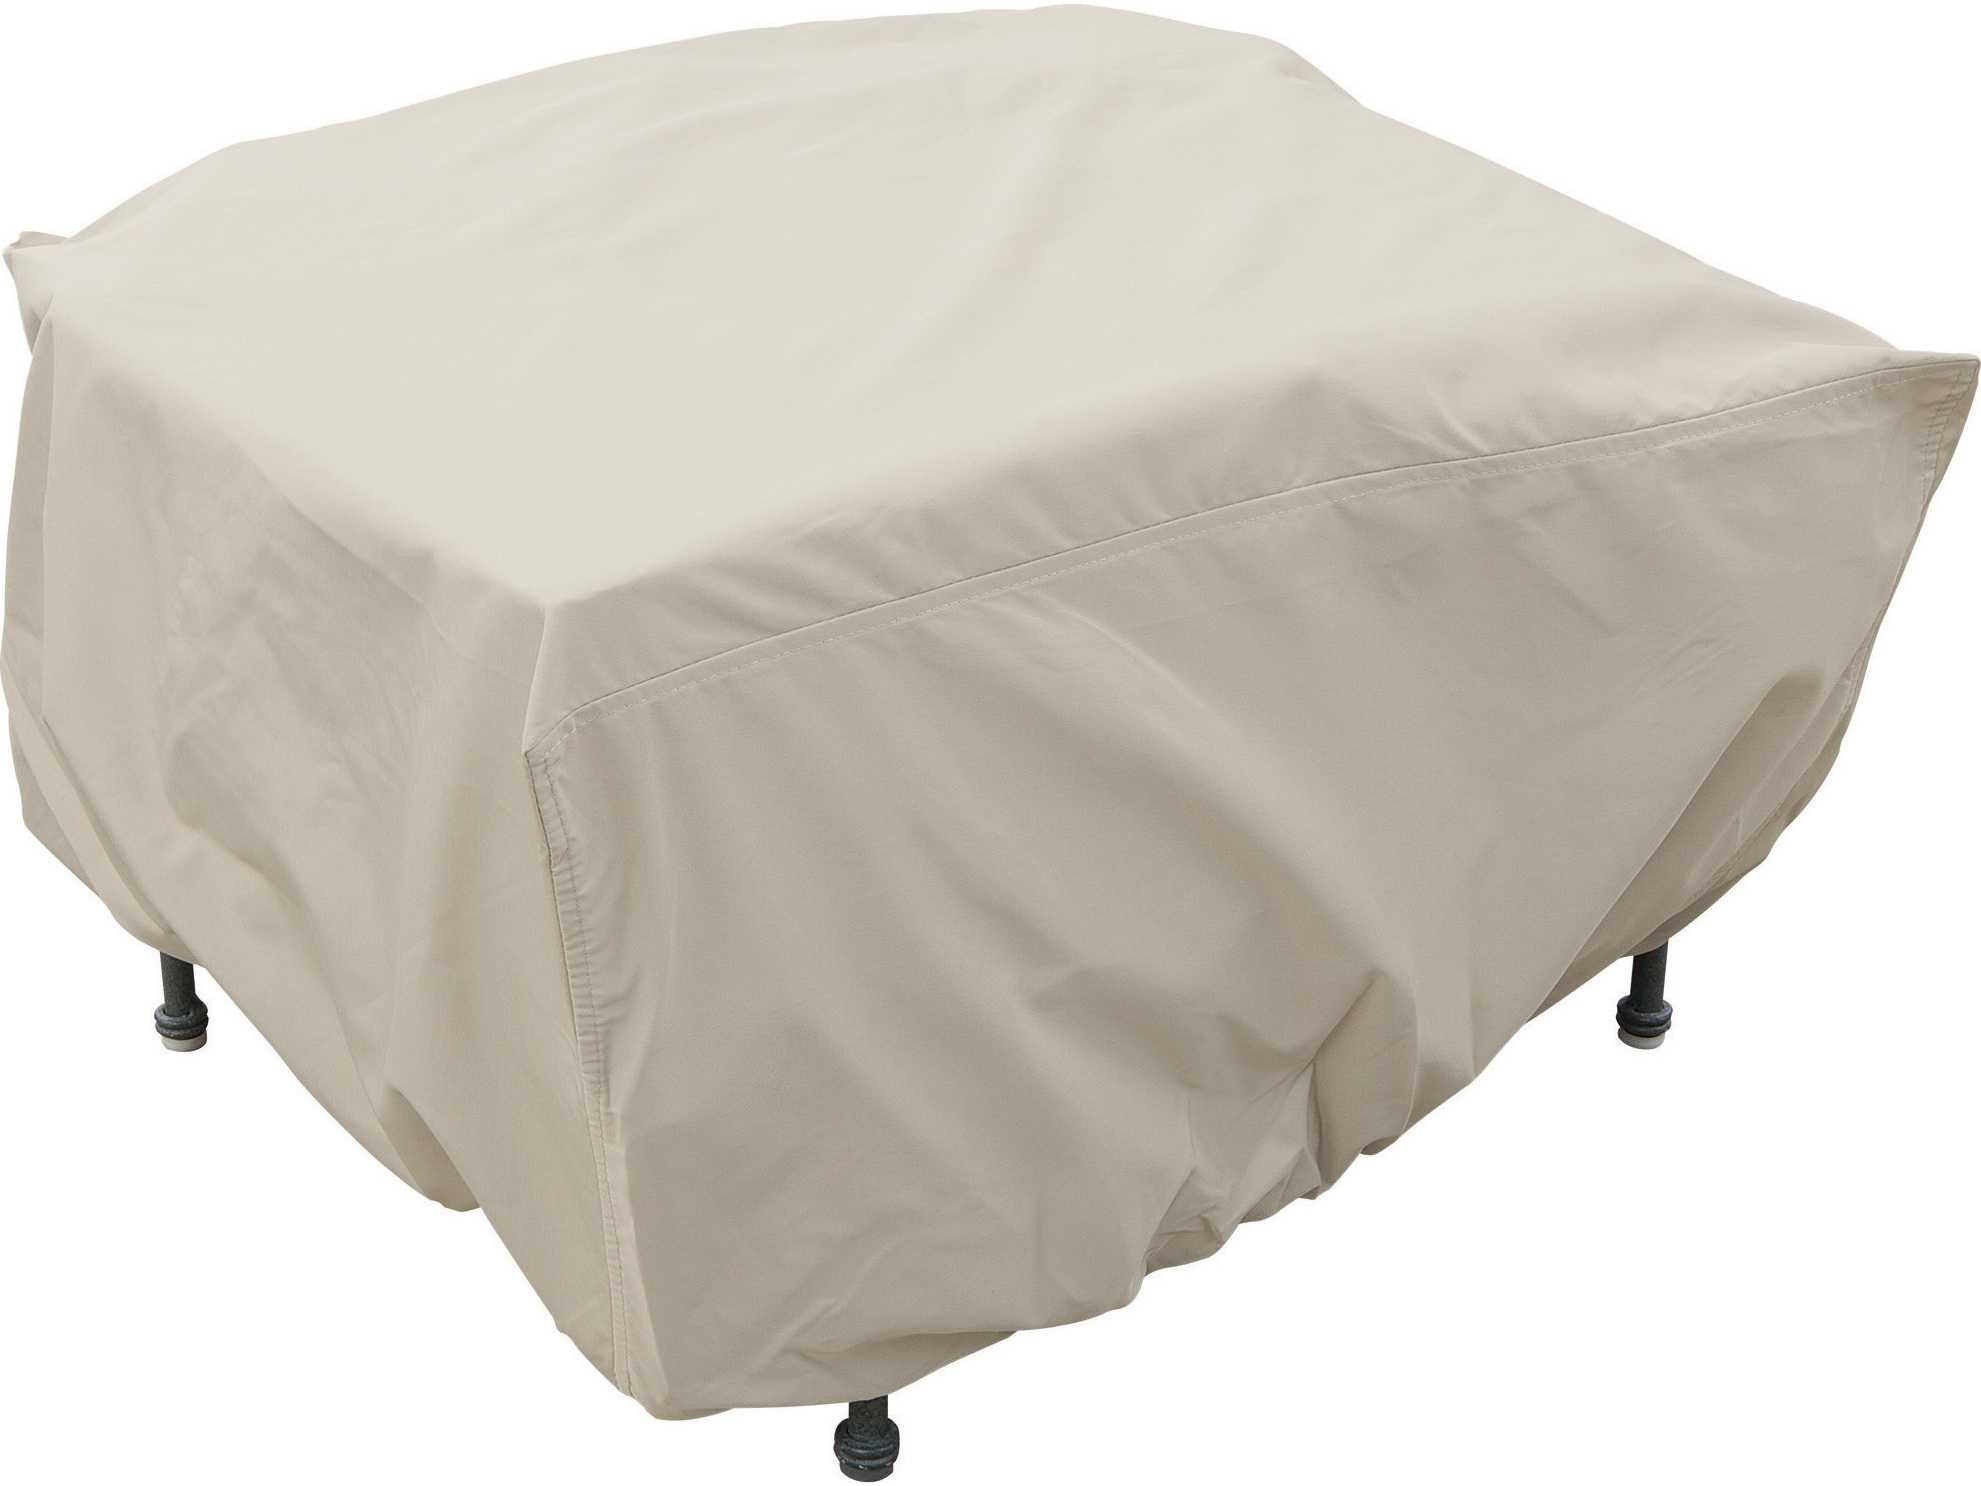 Treasure garden large ottoman cover cp210 for Treasure garden patio furniture covers